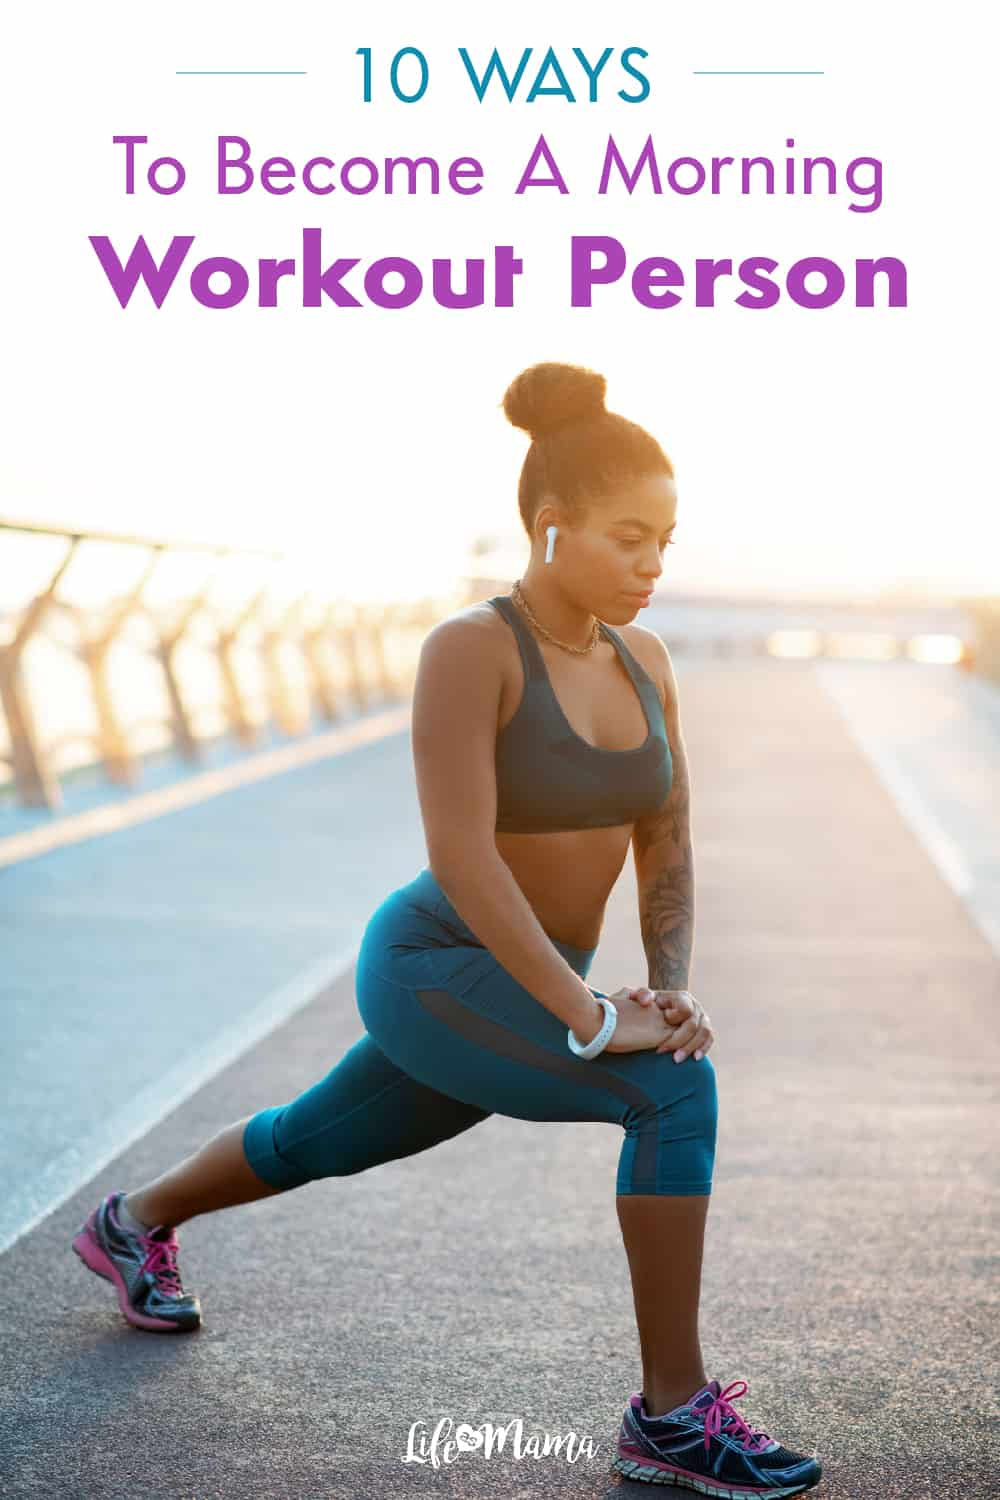 10 Best Ways To Become A Morning Workout Person